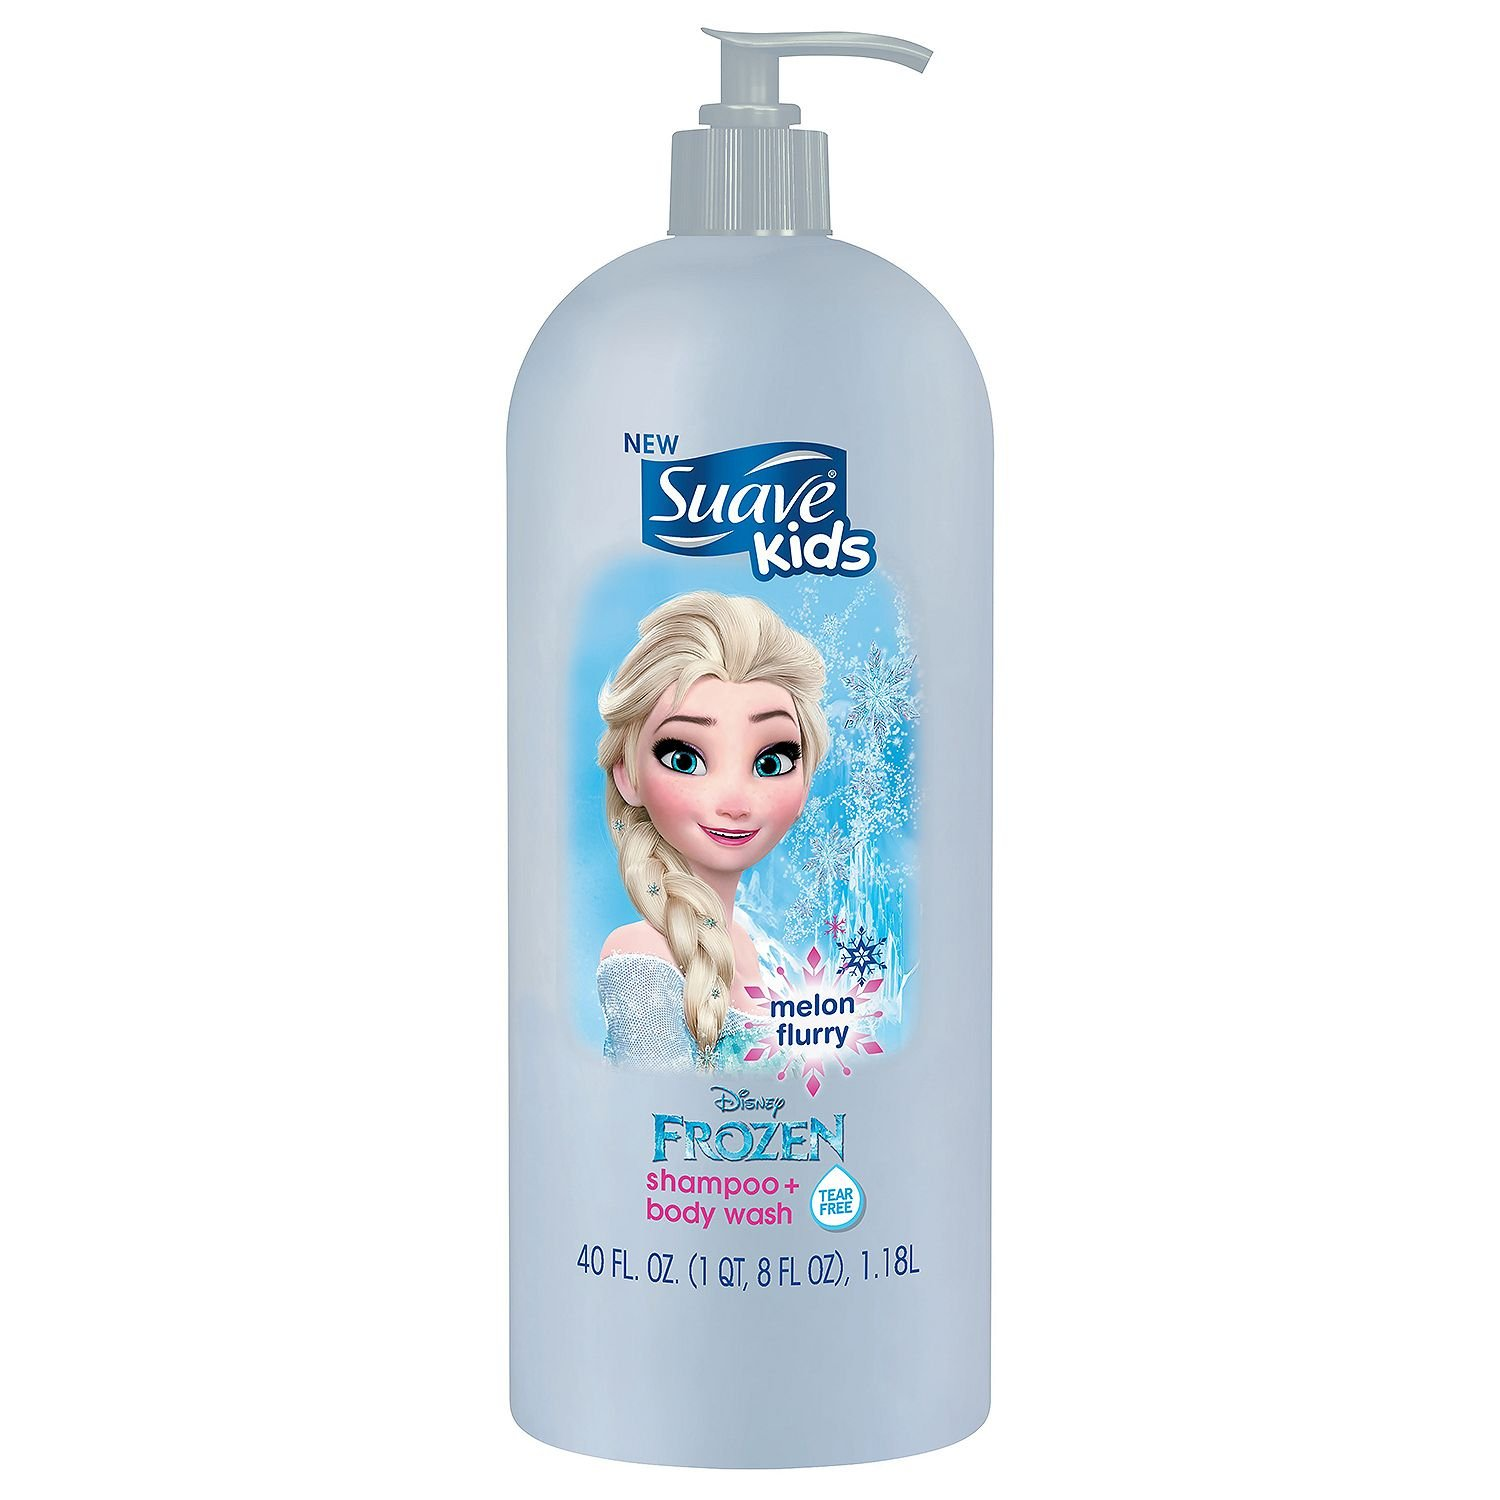 Suave Kids Shampoo & Body Wash, Melon Flurry (40 fl. oz.)